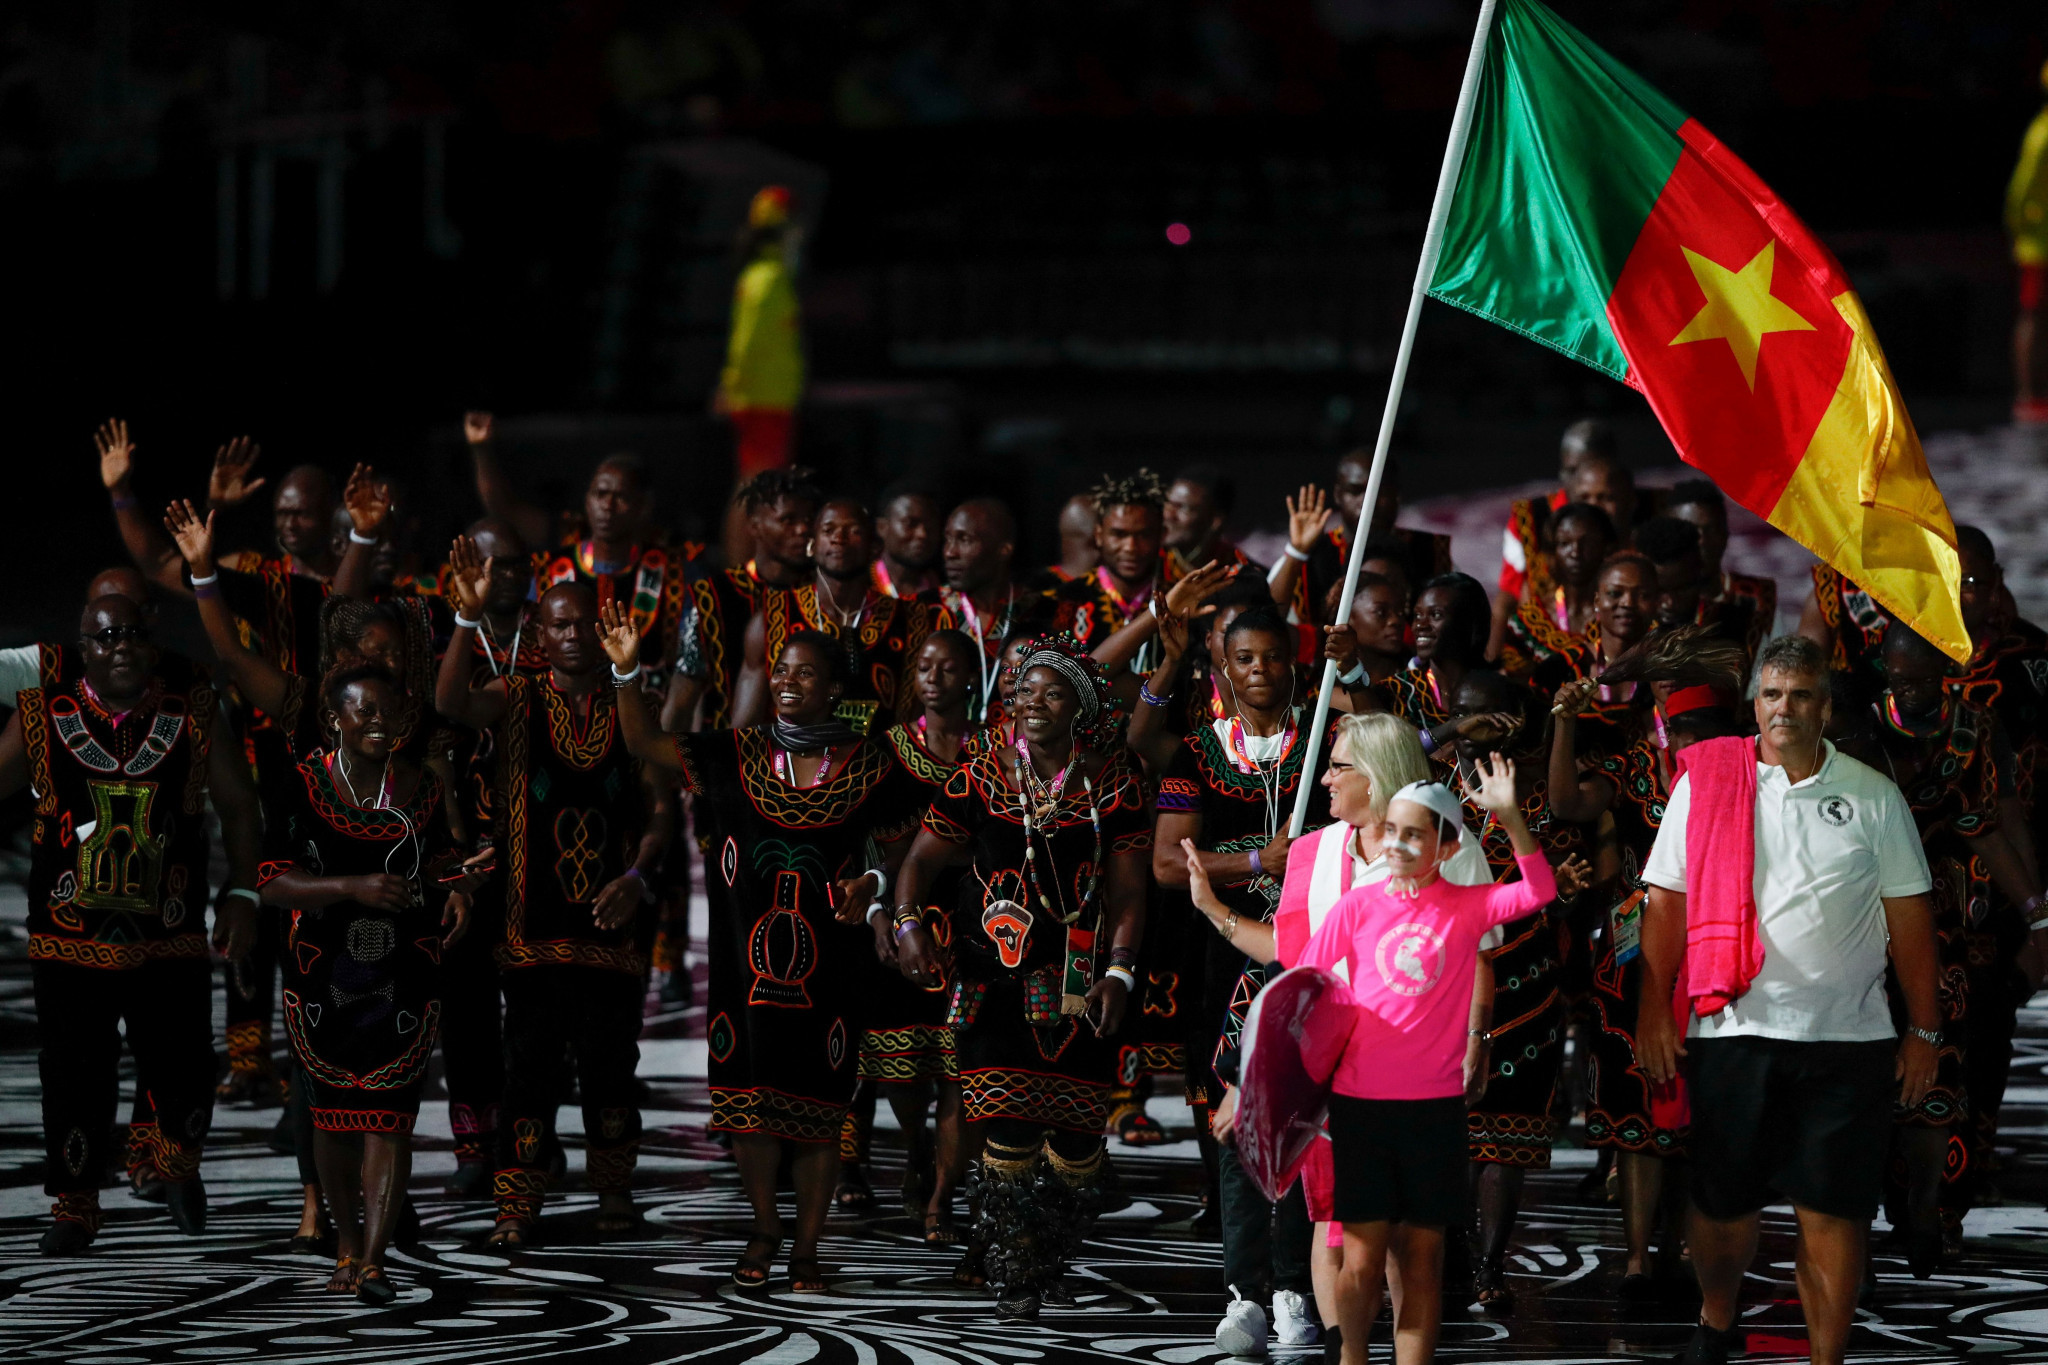 A third of the Cameroon team that competed at the 2018 Commonwealth Games in the Gold Coast disappeared after the event ©Getty Images